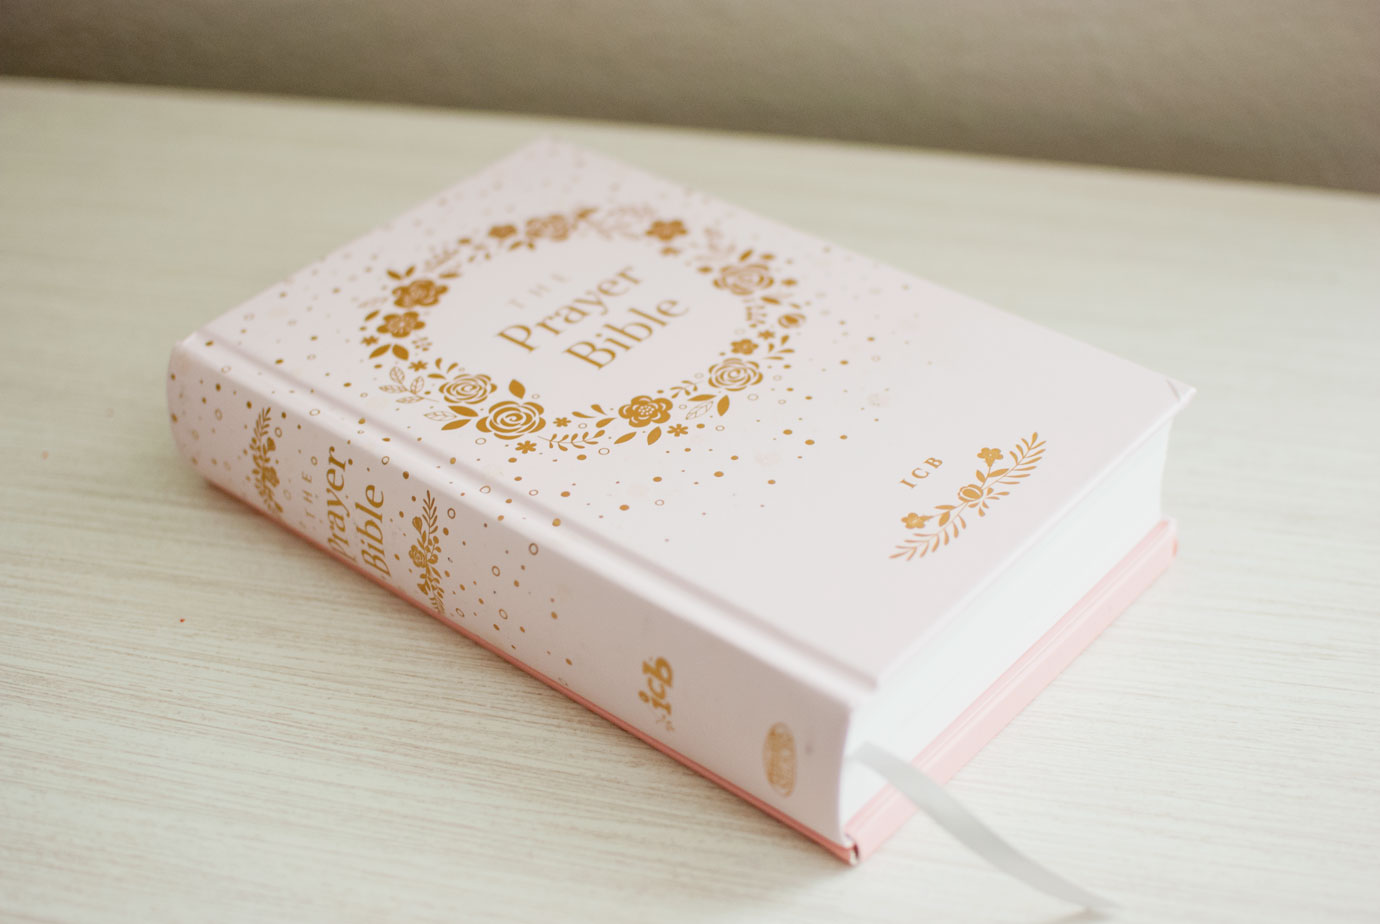 The ICB Prayer Bible For Children has a pink and gold floral design with a hard cover #ICBPrayerBible